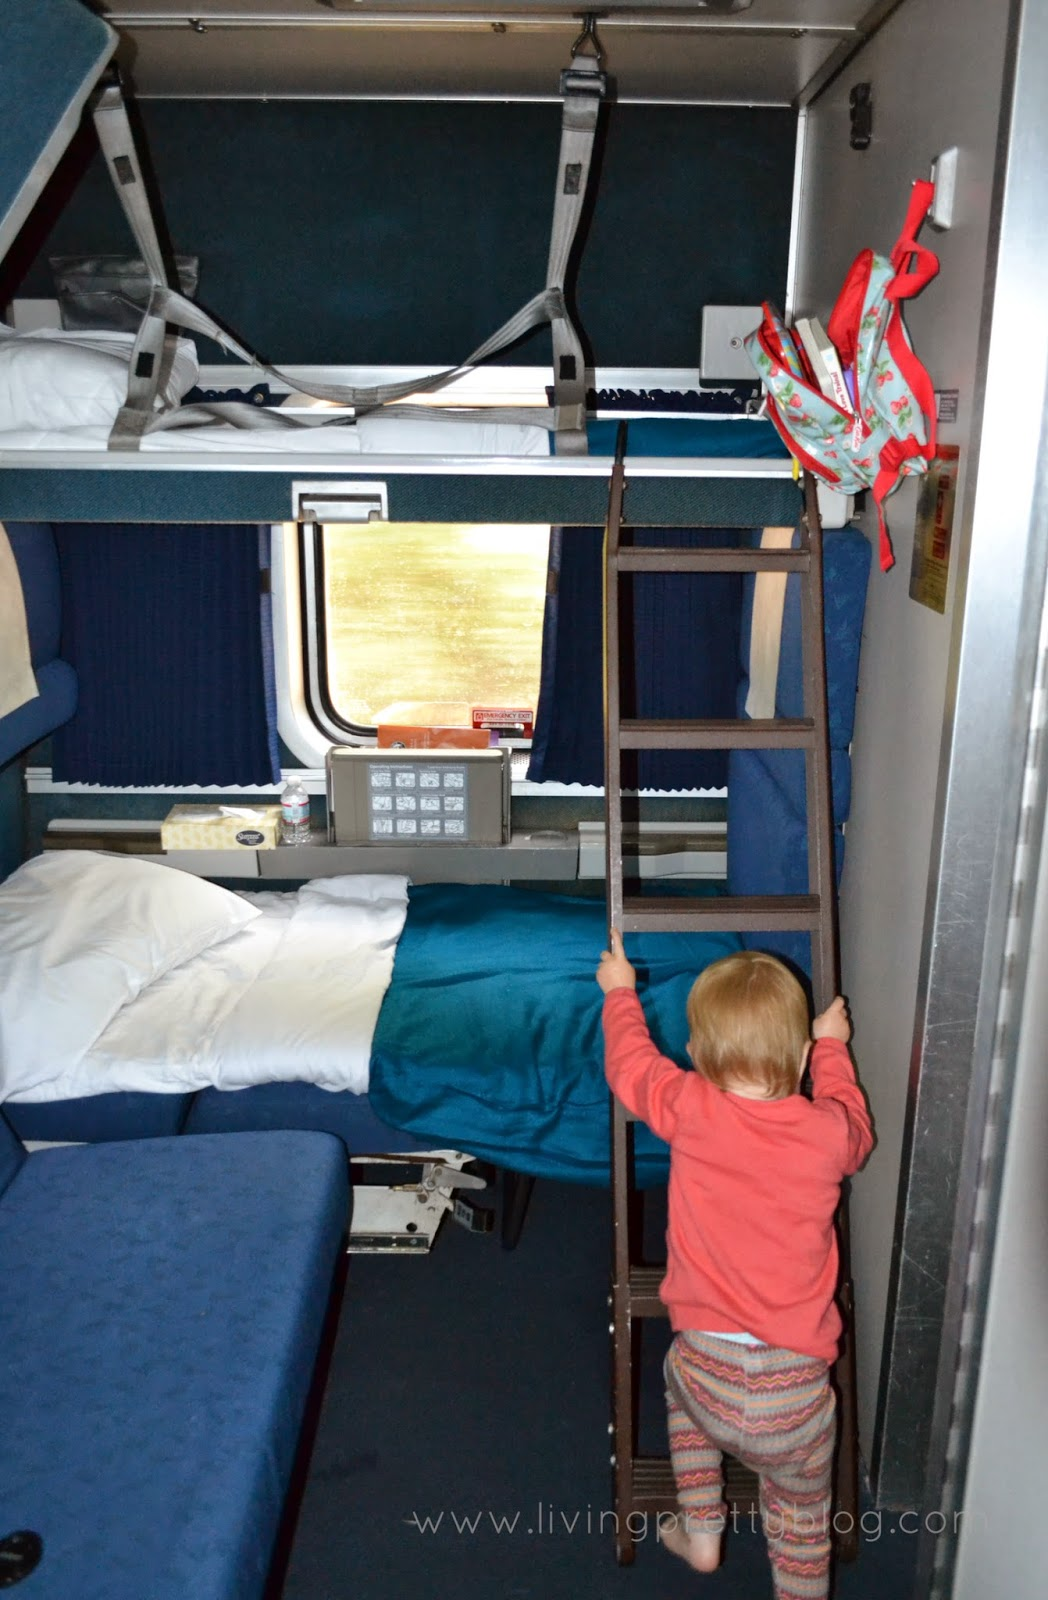 superliner family bedroom trip report chicago to new orleans with via amtrak 13427